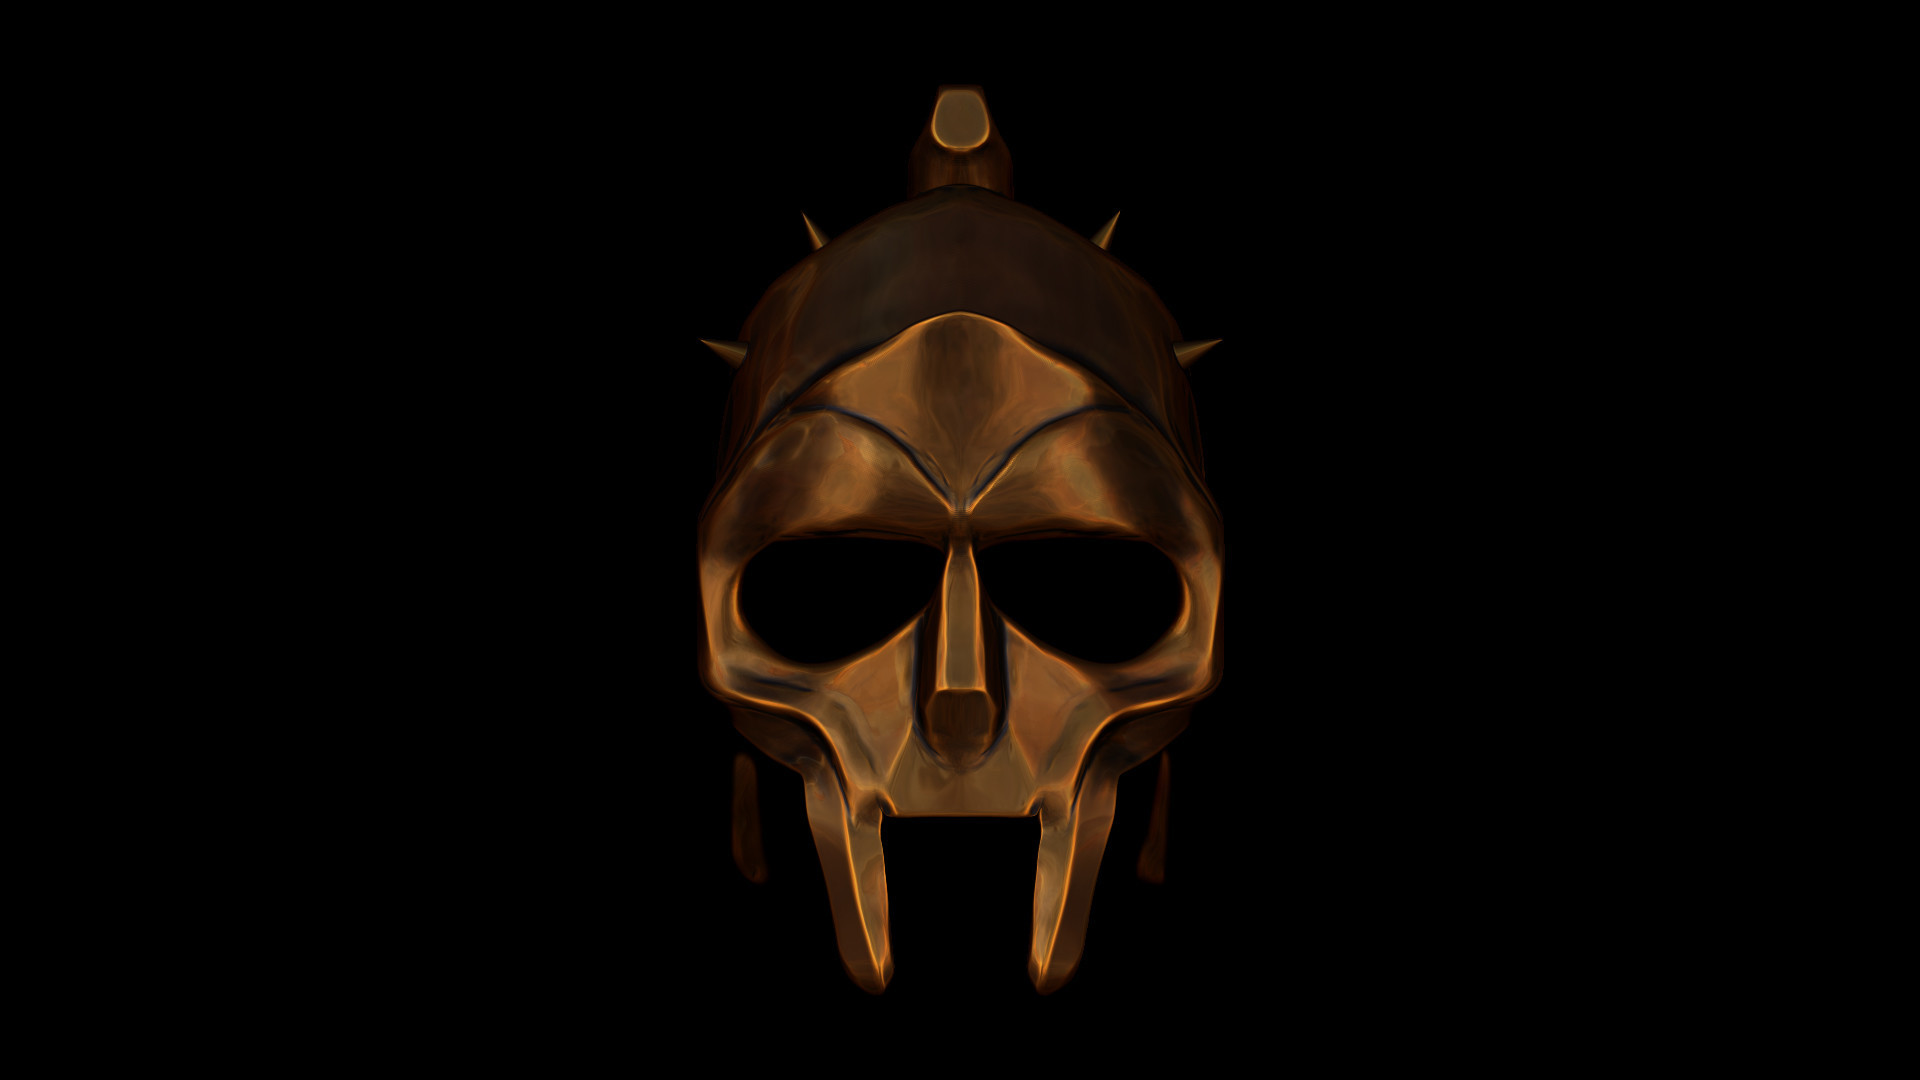 Manly Iphone Wallpaper Gladiator Wallpaper 66 Images